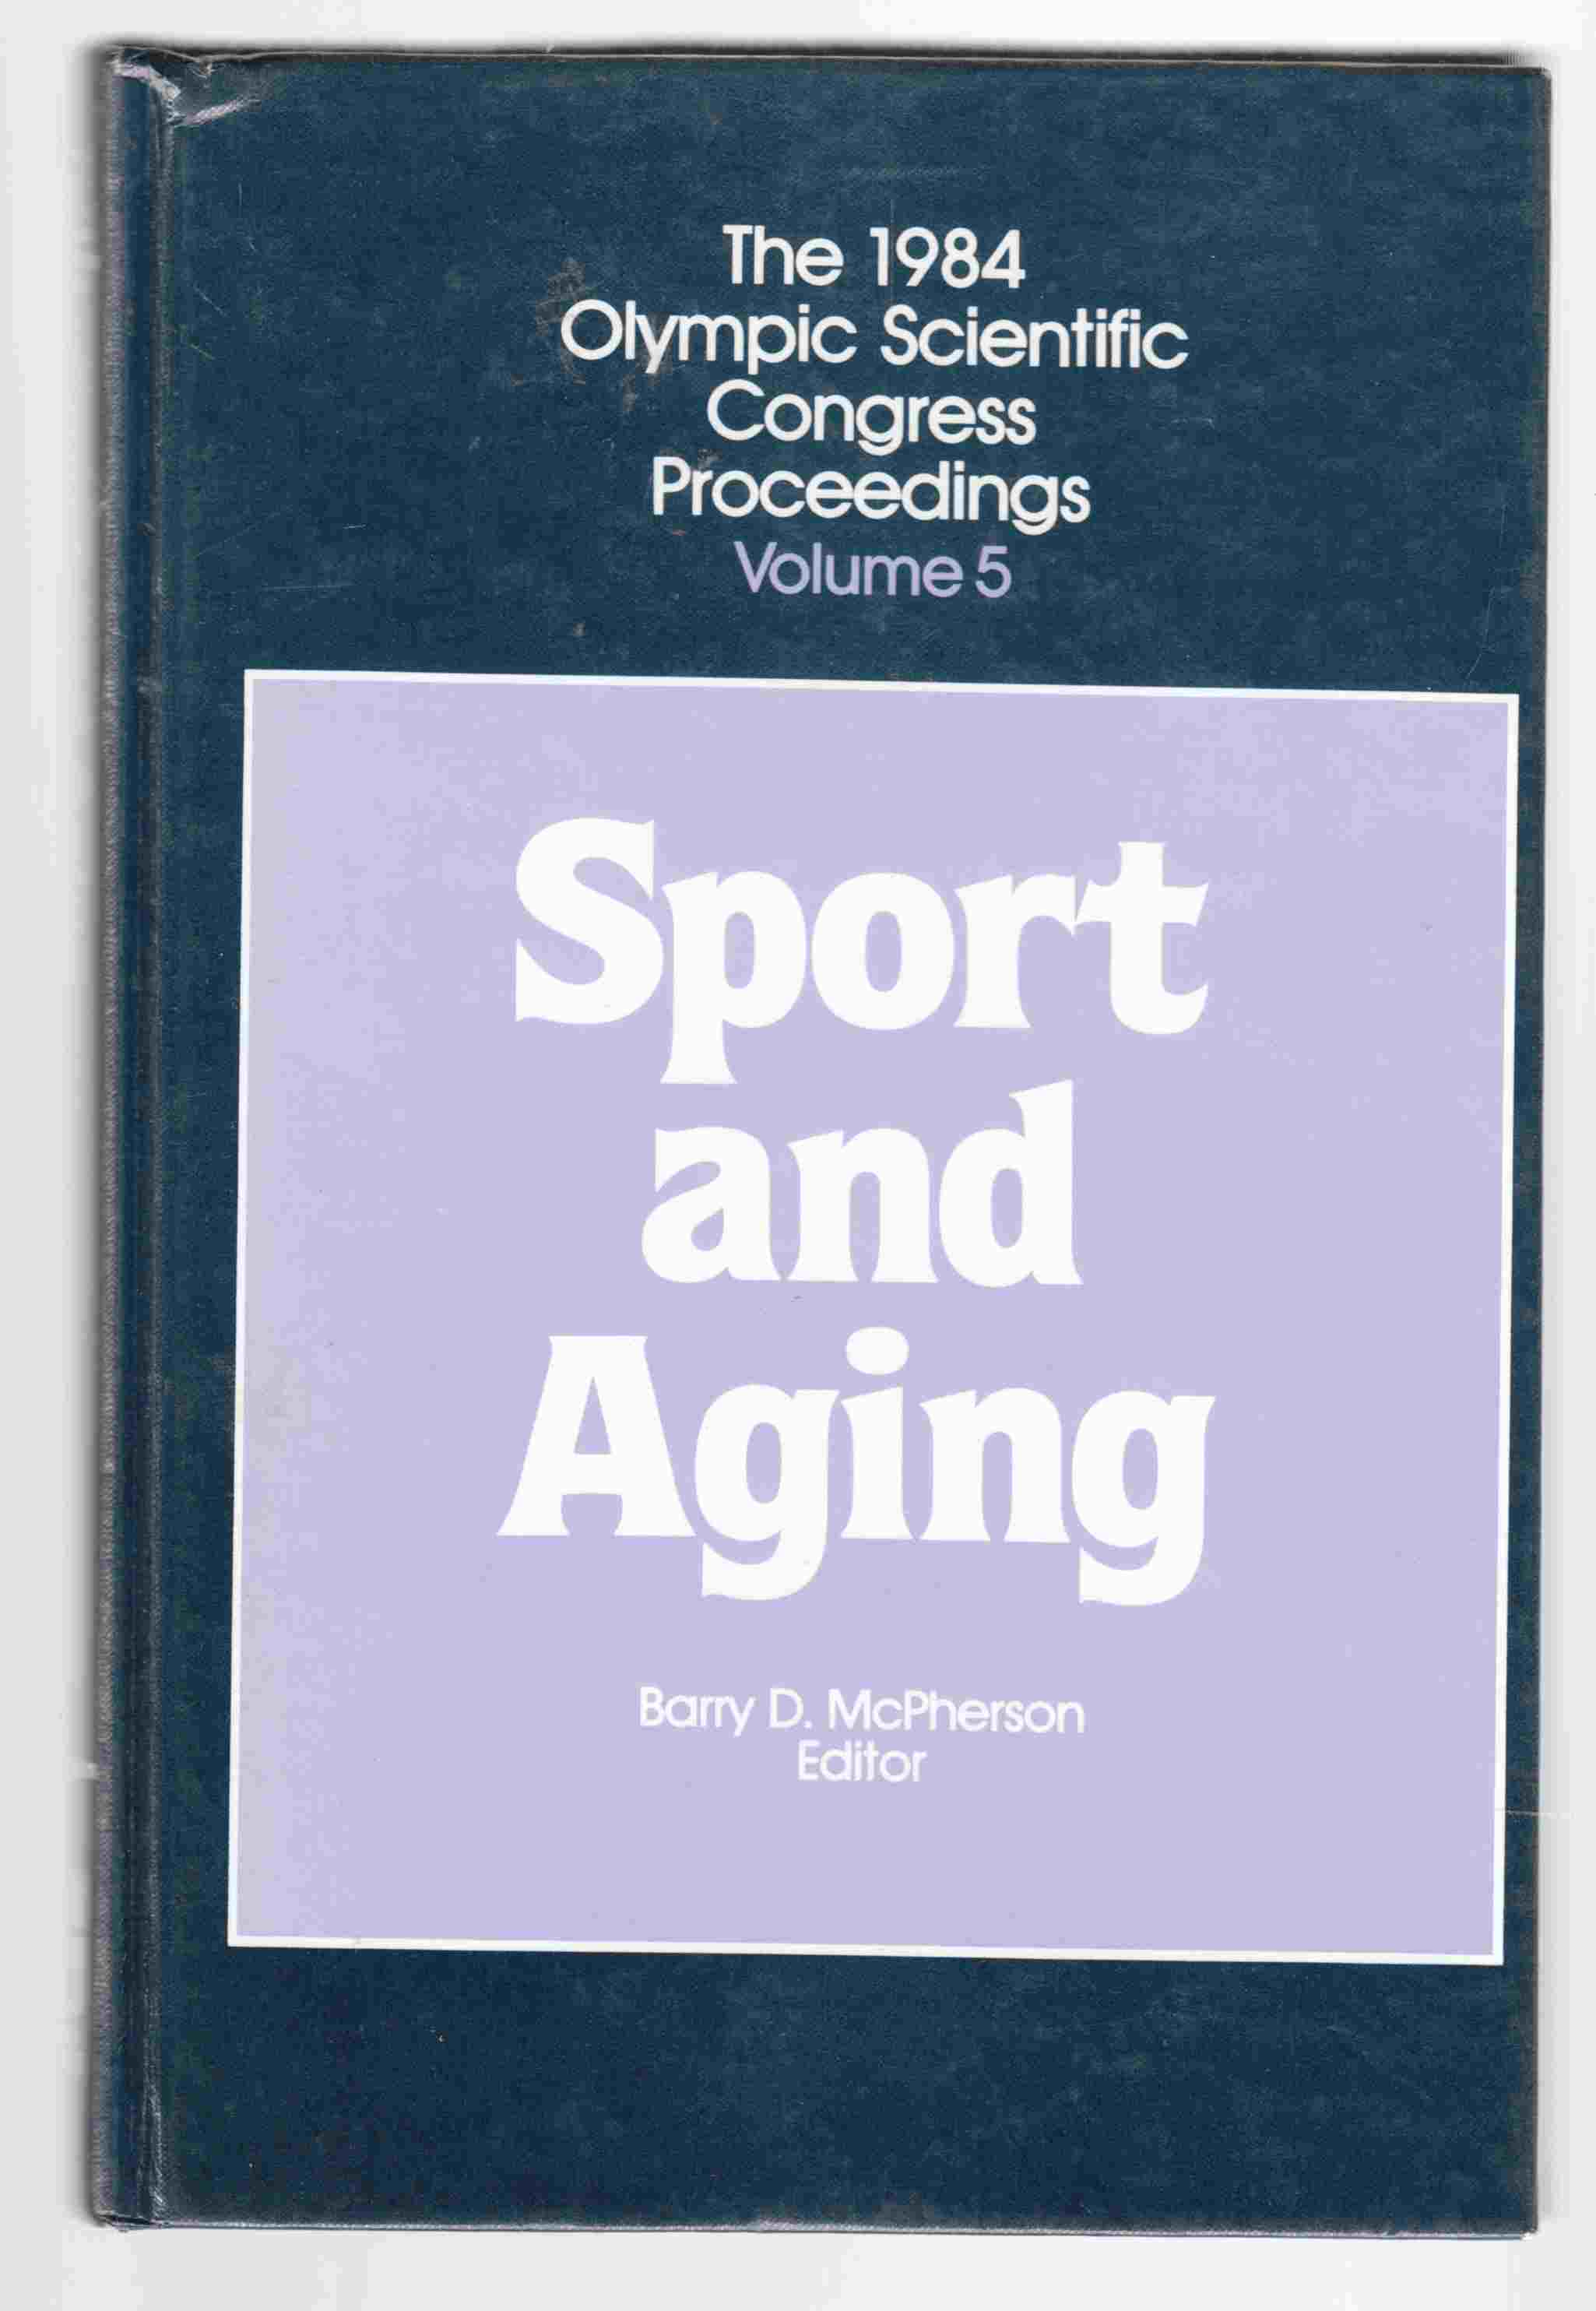 Image for The 1984 Olympic Scientific Congress Proceedings, Volume 5: Sport and Aging